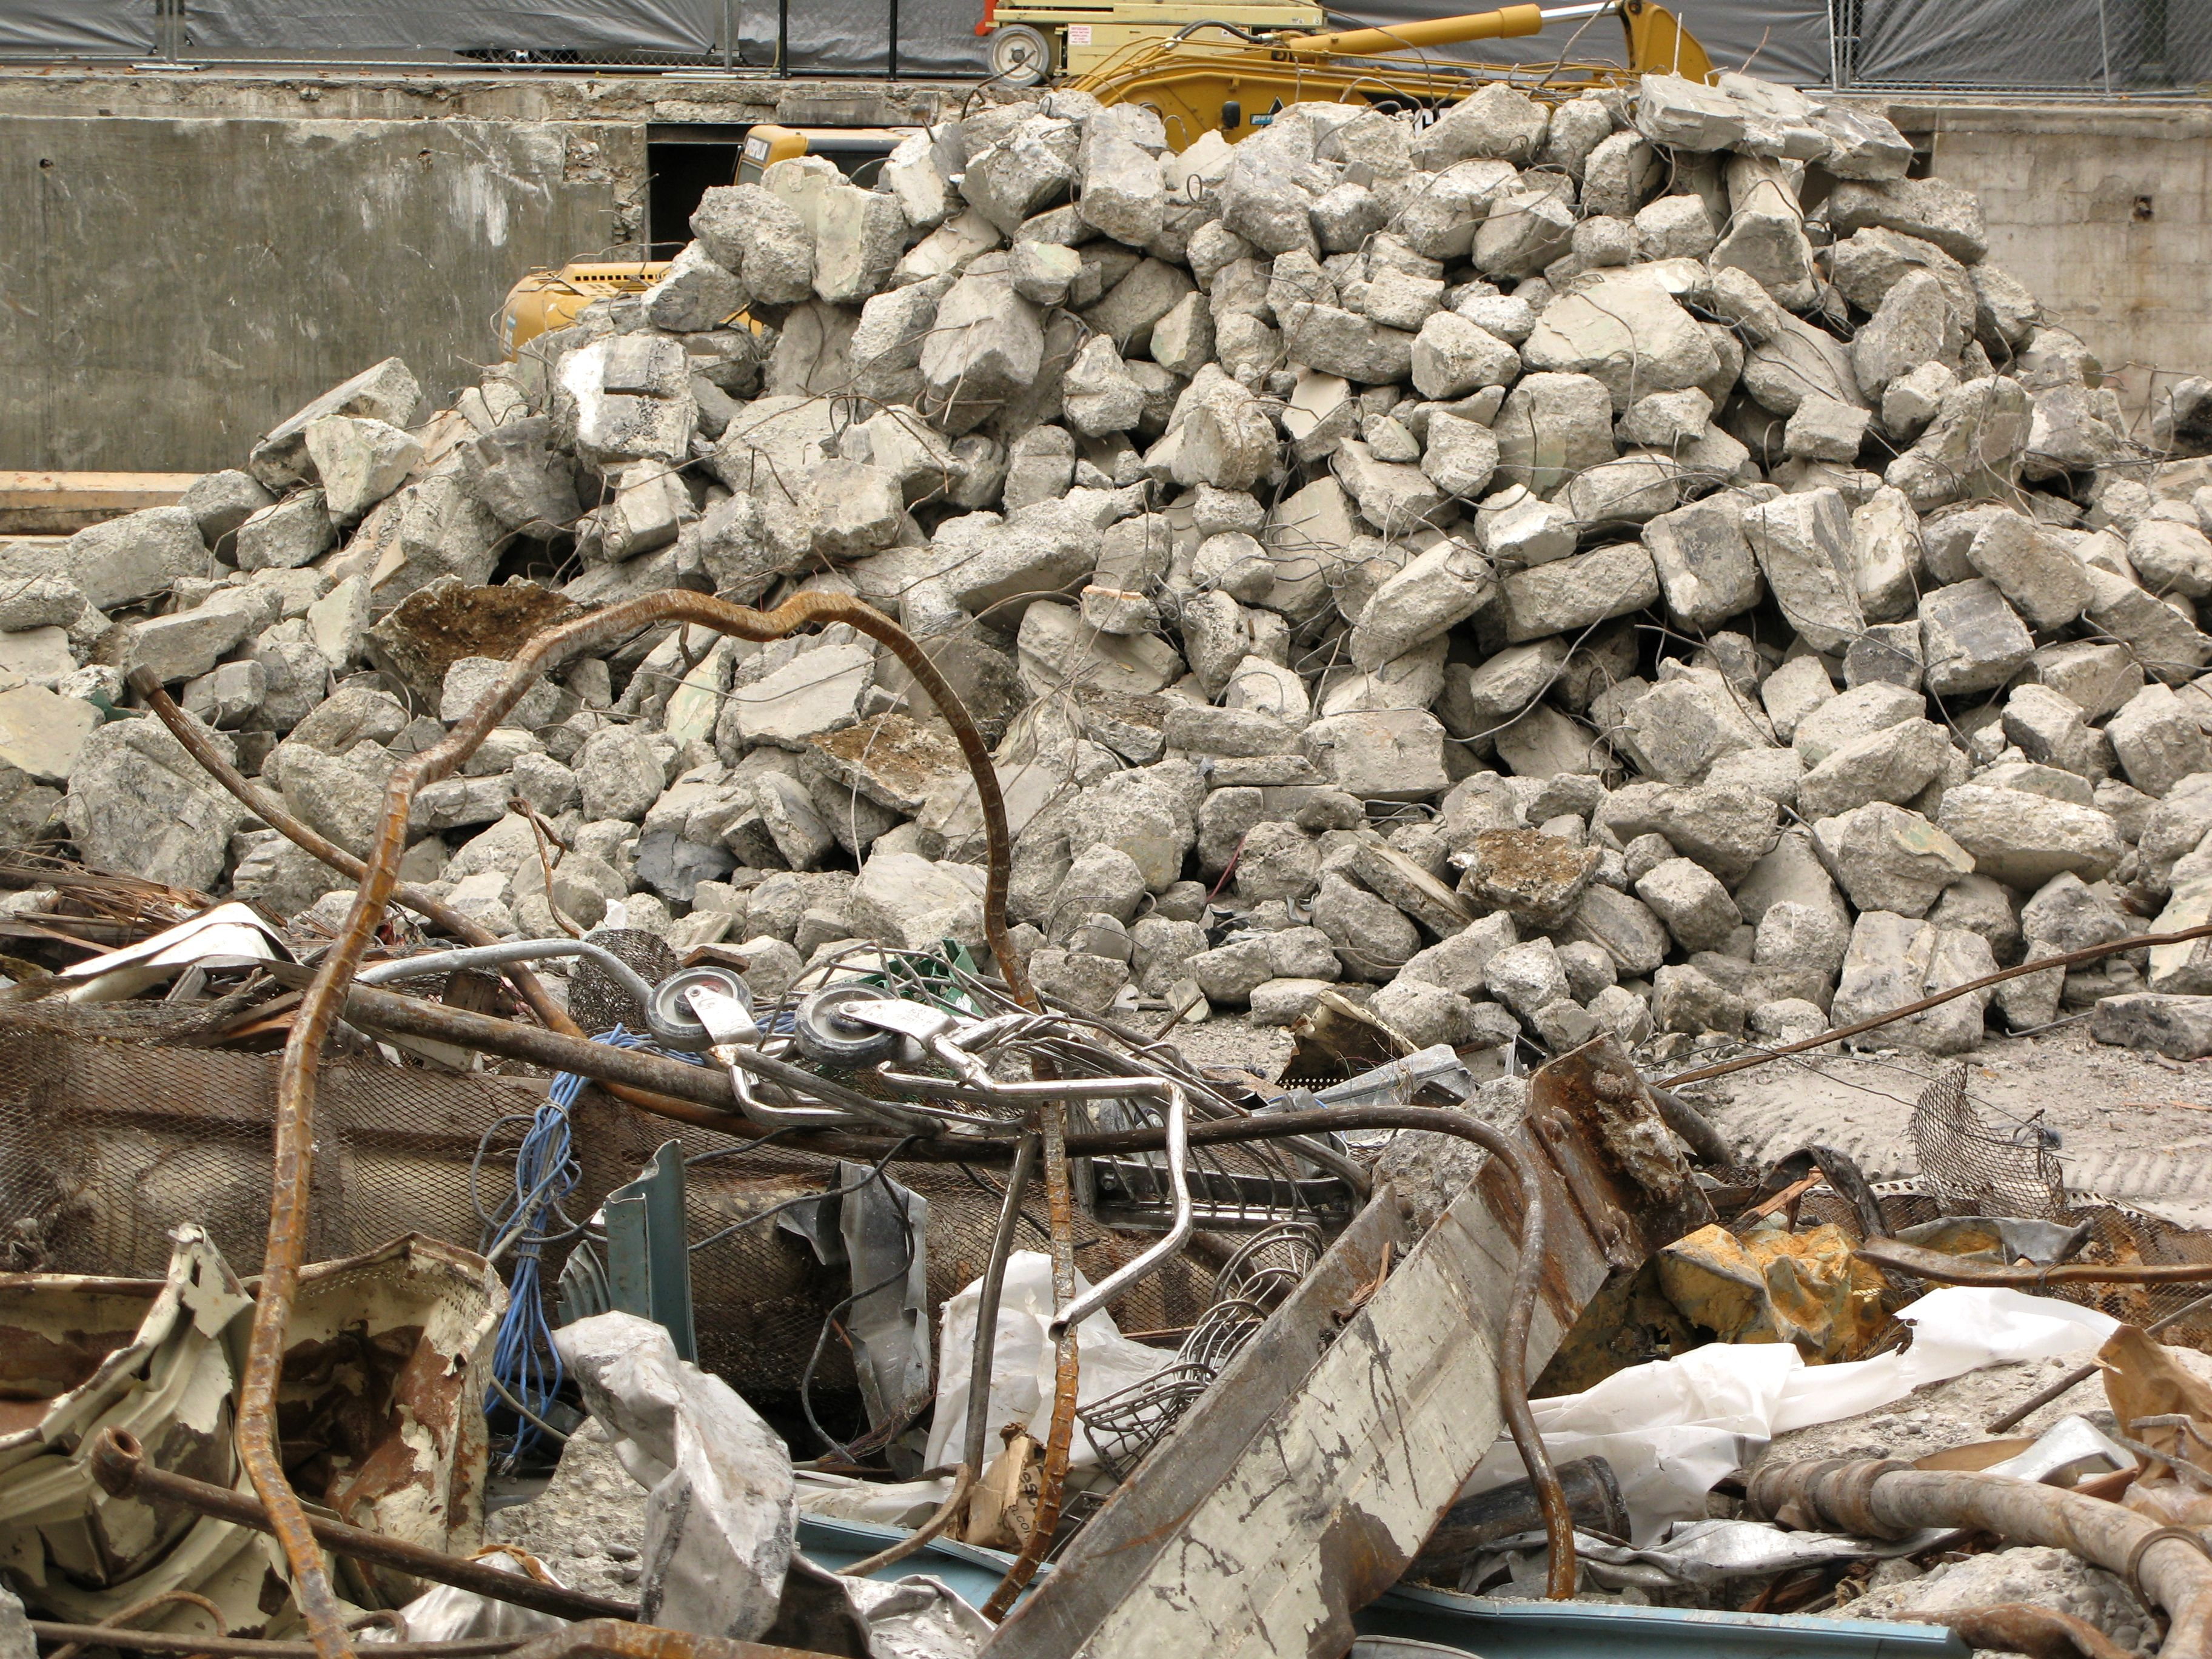 The cement rubble is segregated from the other piles of rubble.